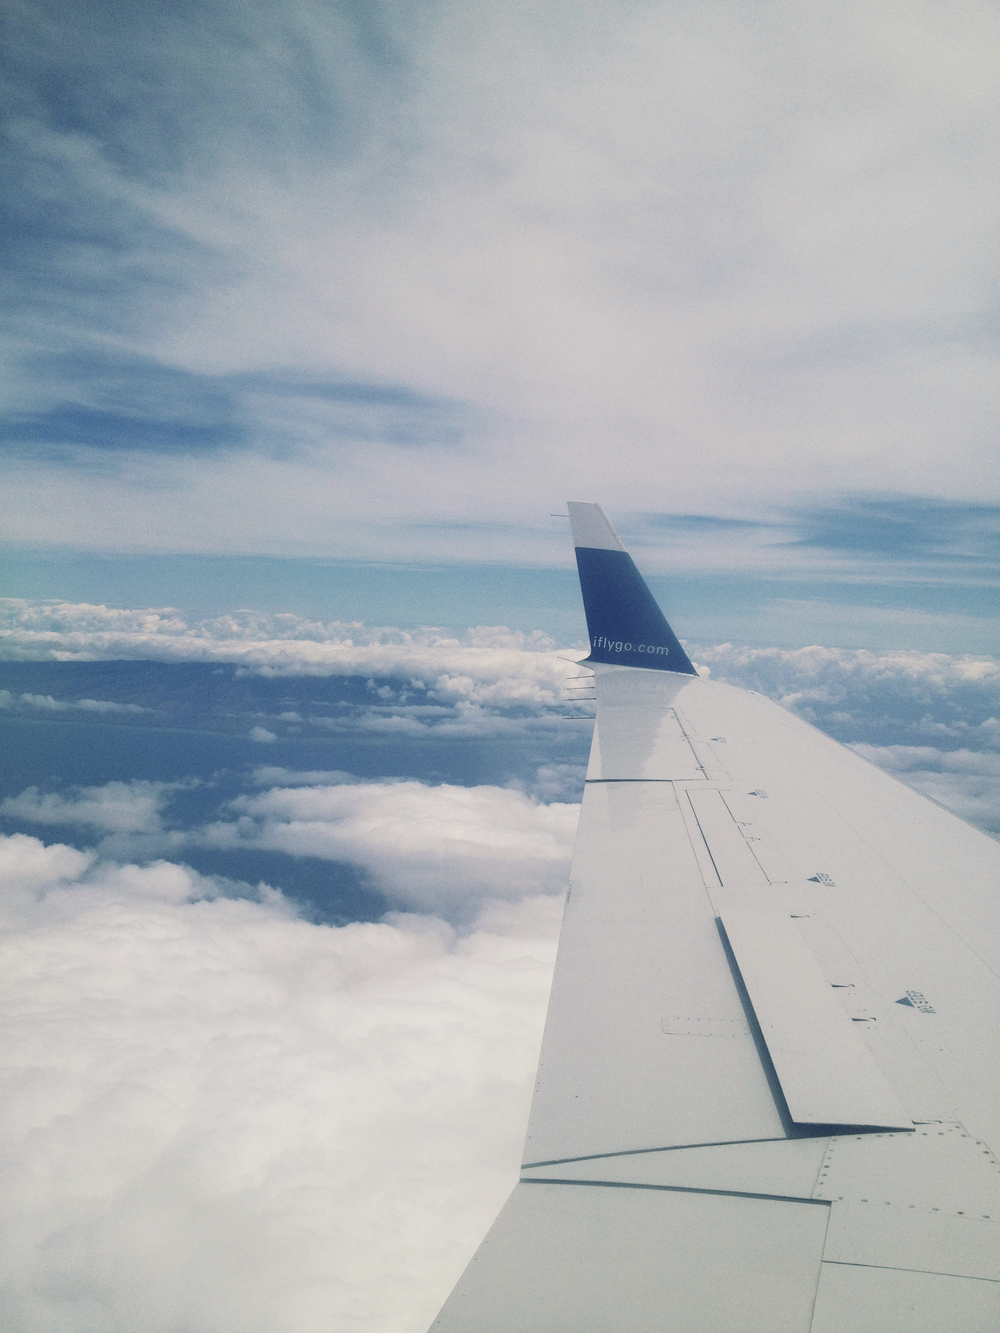 View on the plane